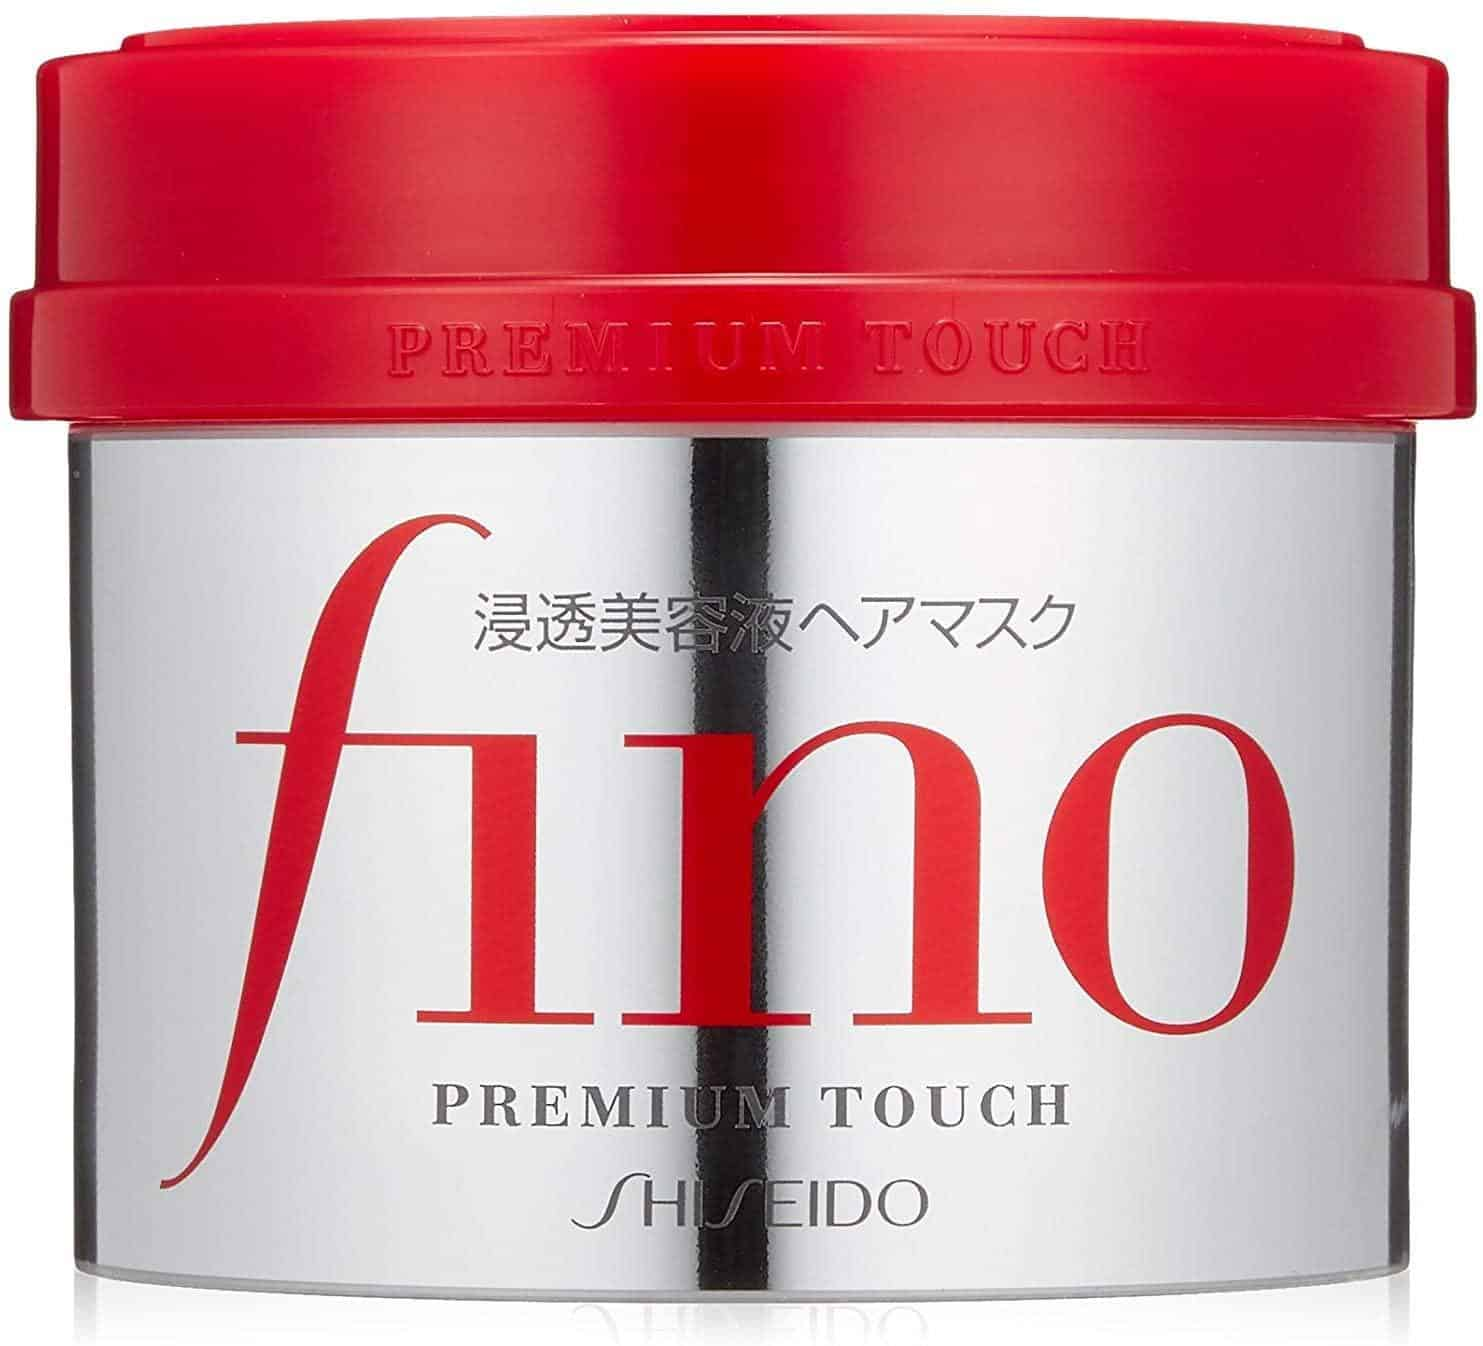 Fino Premium Touch Hair Mask is Best Beauty Products in Singapore, The Best Hair Masks According to Hair Experts, What is the best thing to use for a hair mask?, Which is the best hair mask for damaged hair?, What is the best homemade hair mask for hair growth?